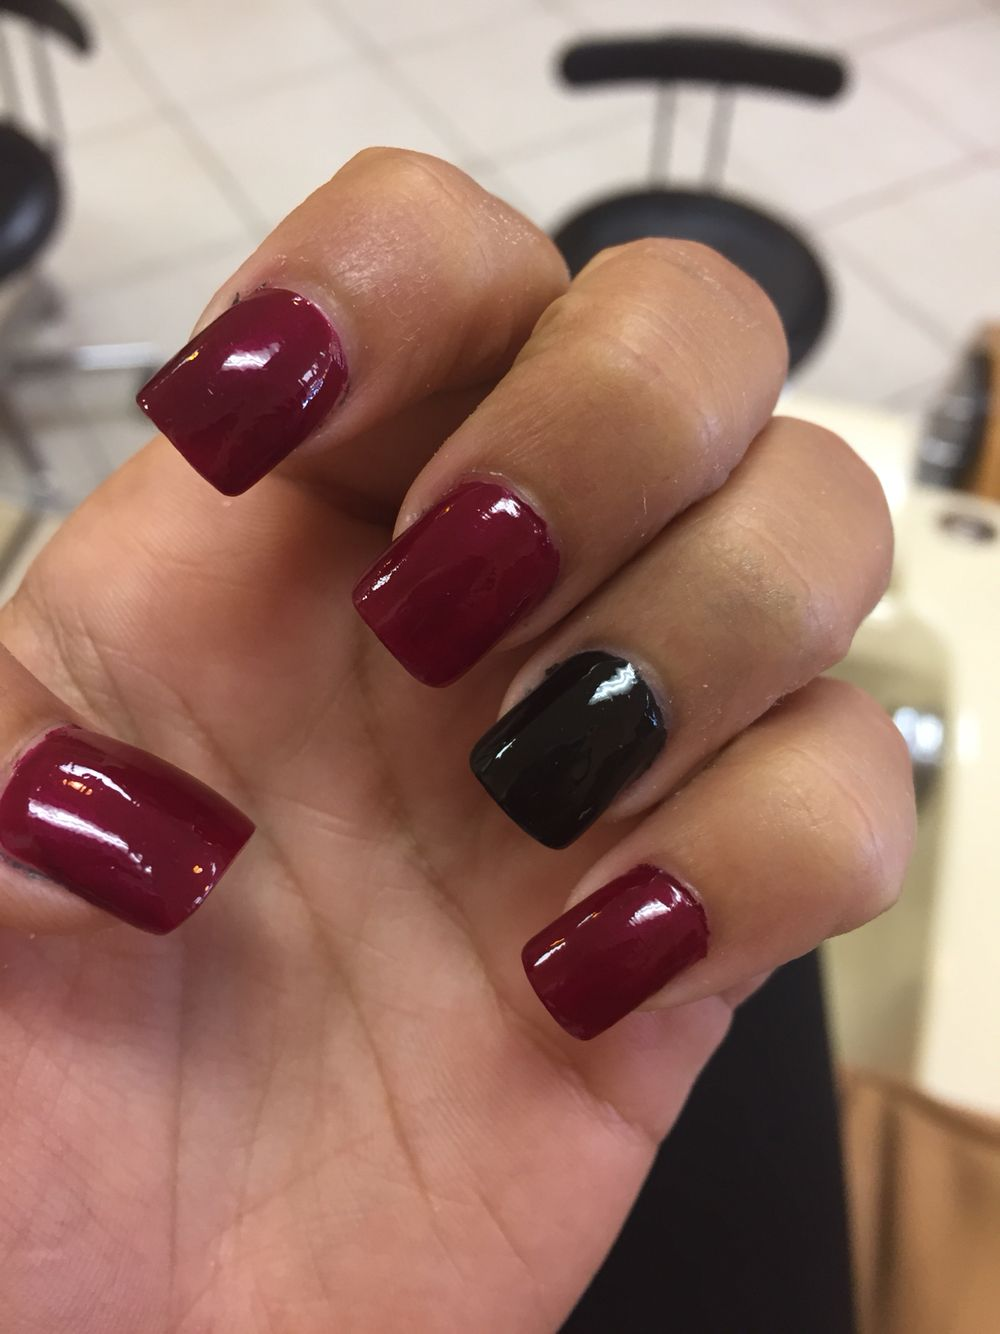 Maroon and black acrylic nails | hair, makeup, and nails | Pinterest ...